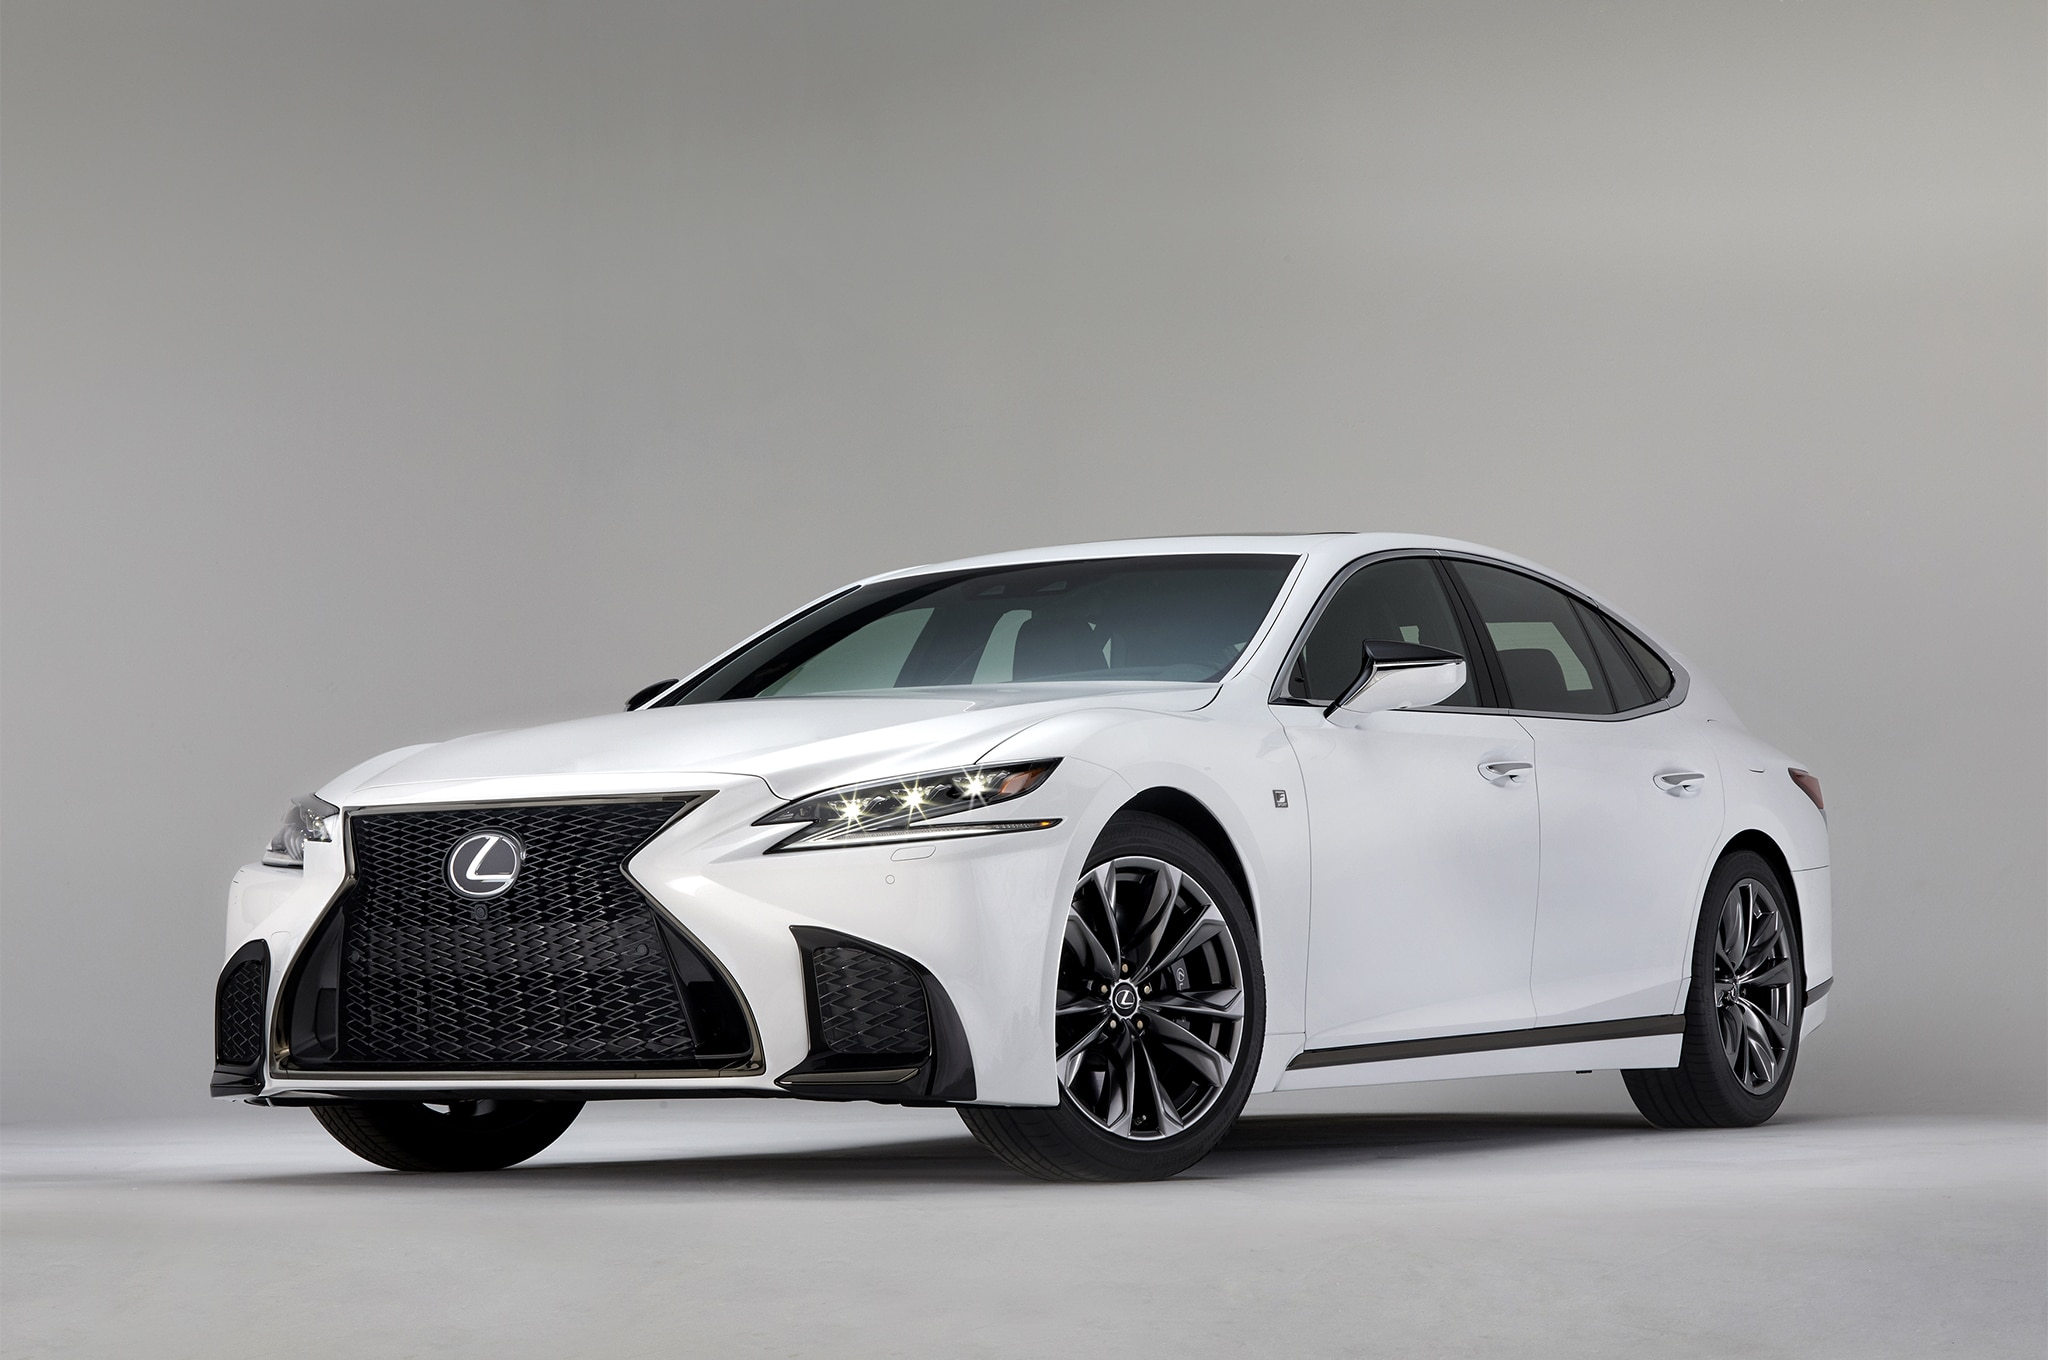 2018 lexus 500 f sport. Beautiful Sport Show More Throughout 2018 Lexus 500 F Sport